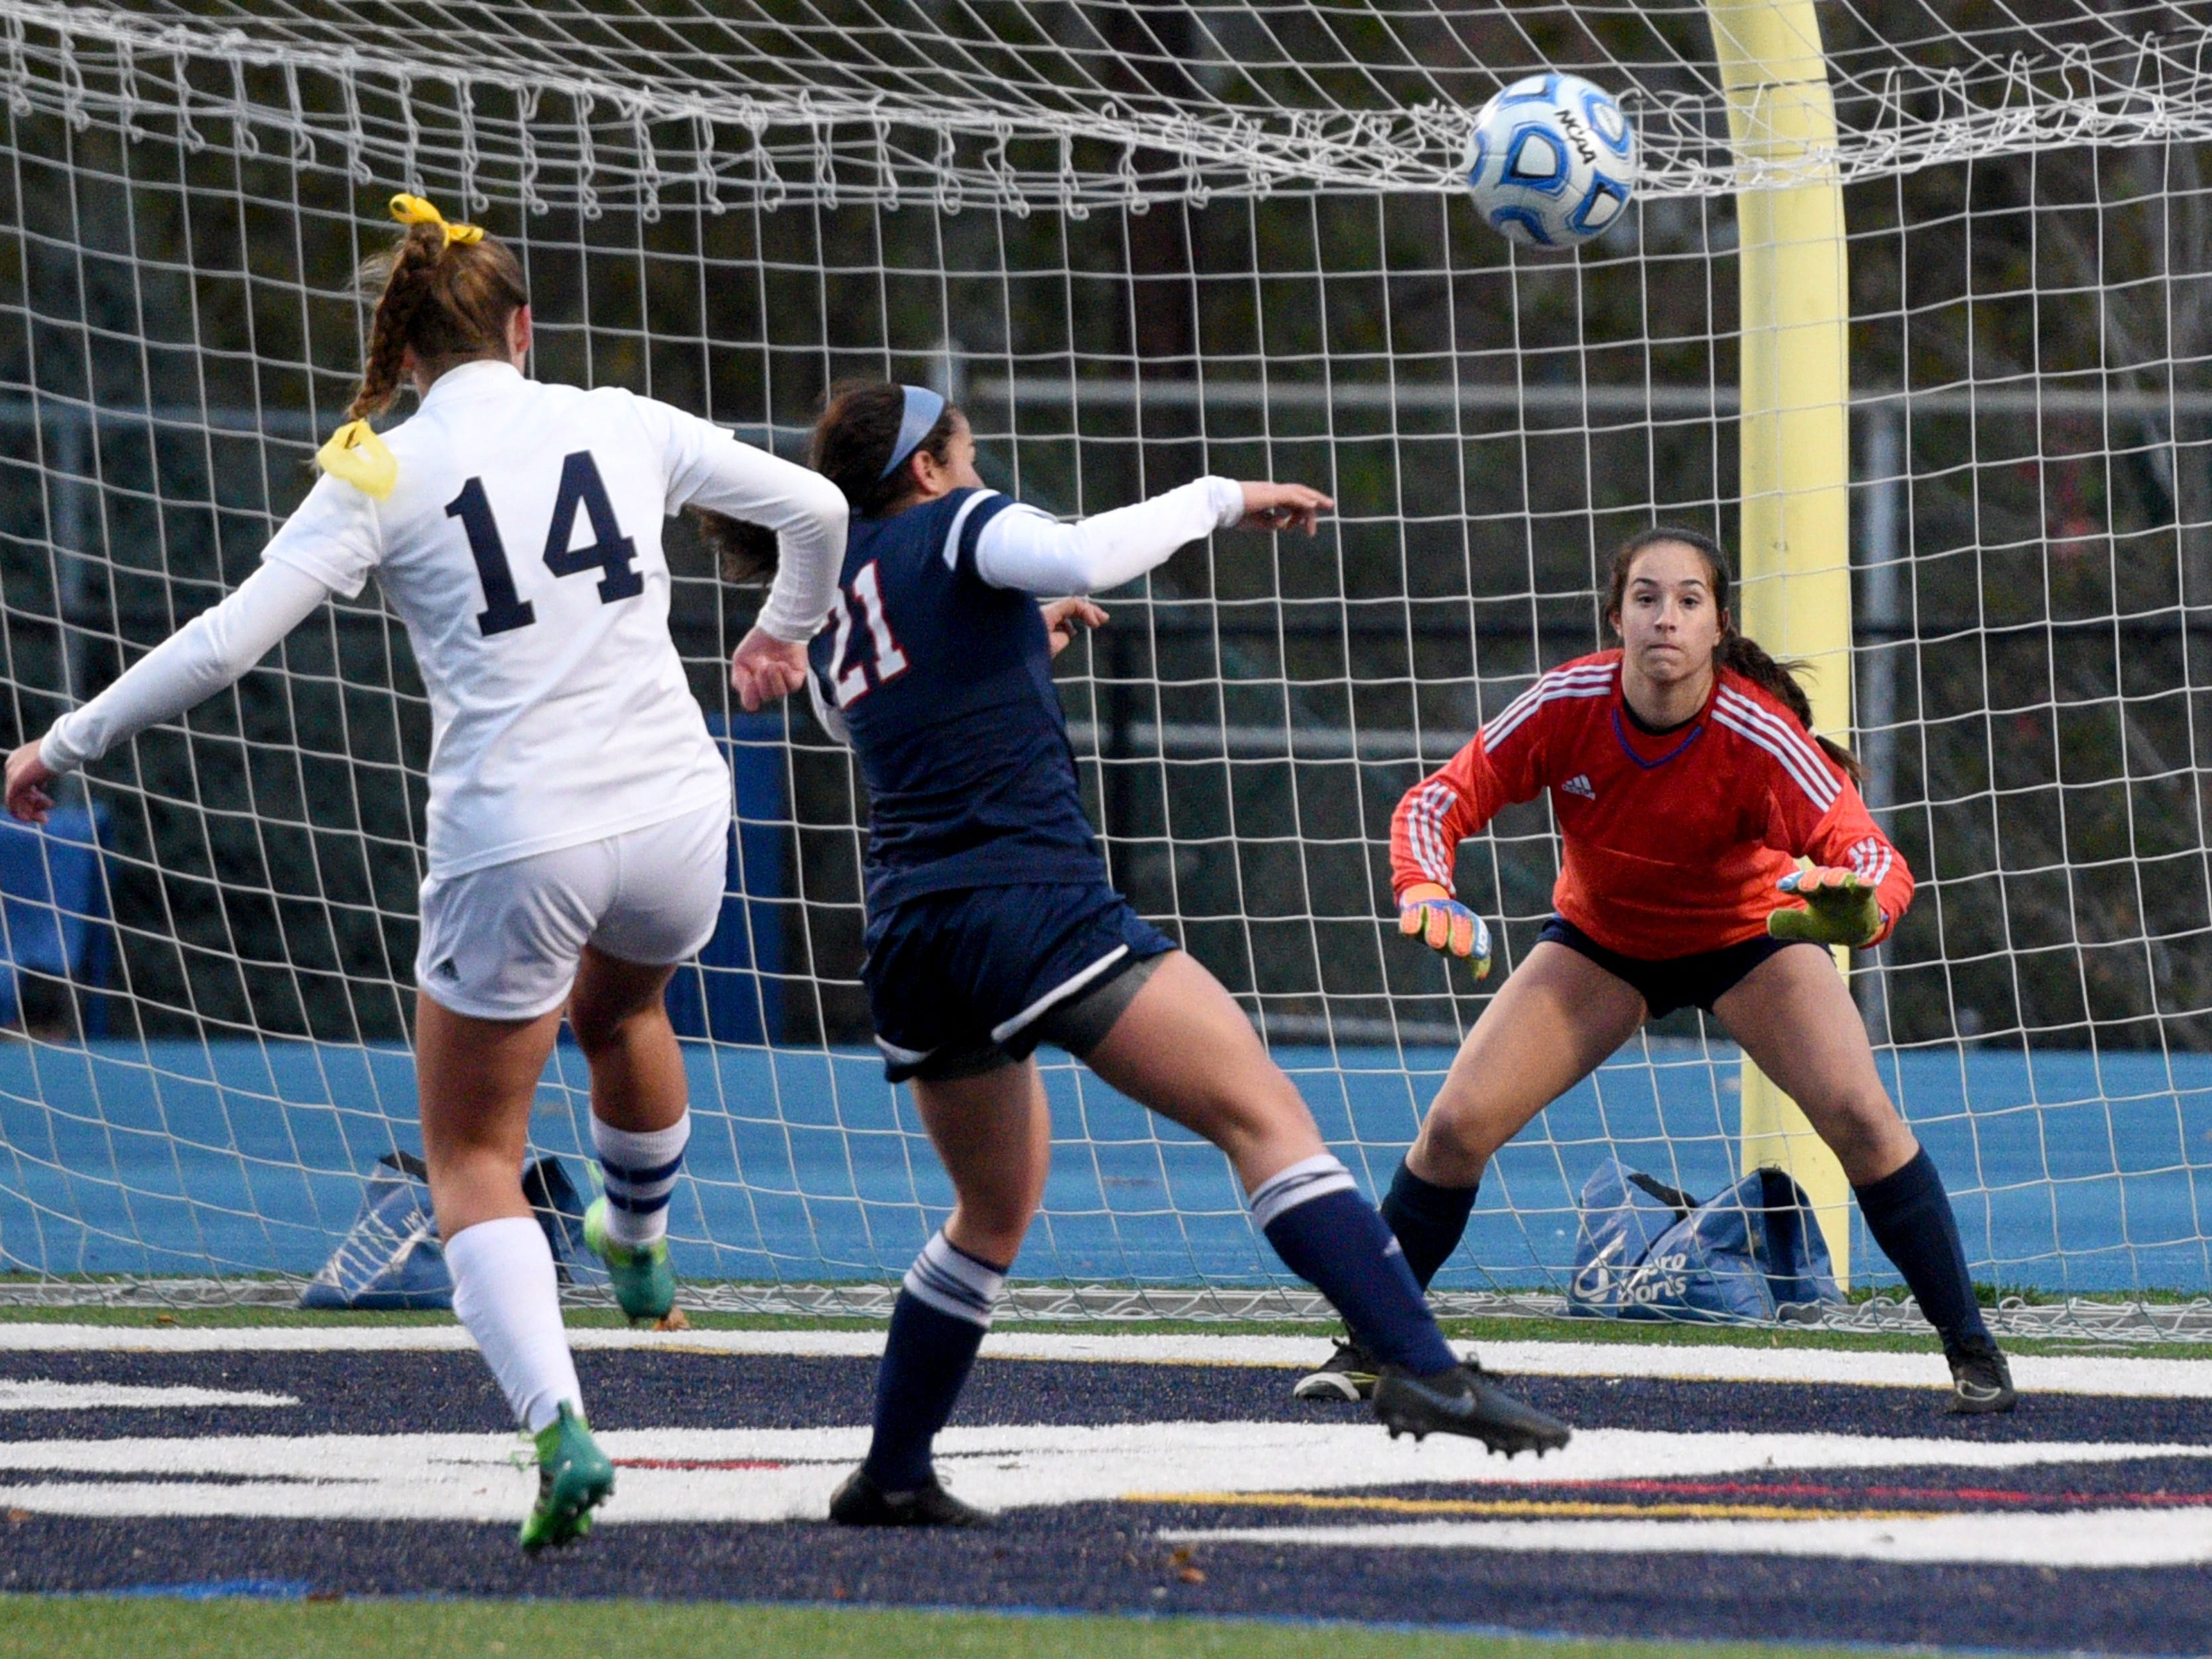 Governor Livingston goalie Sarah Foy waits to make a save against Ramsey during the Group II final on Sunday, Nov. 18, 2018 at Kean University.